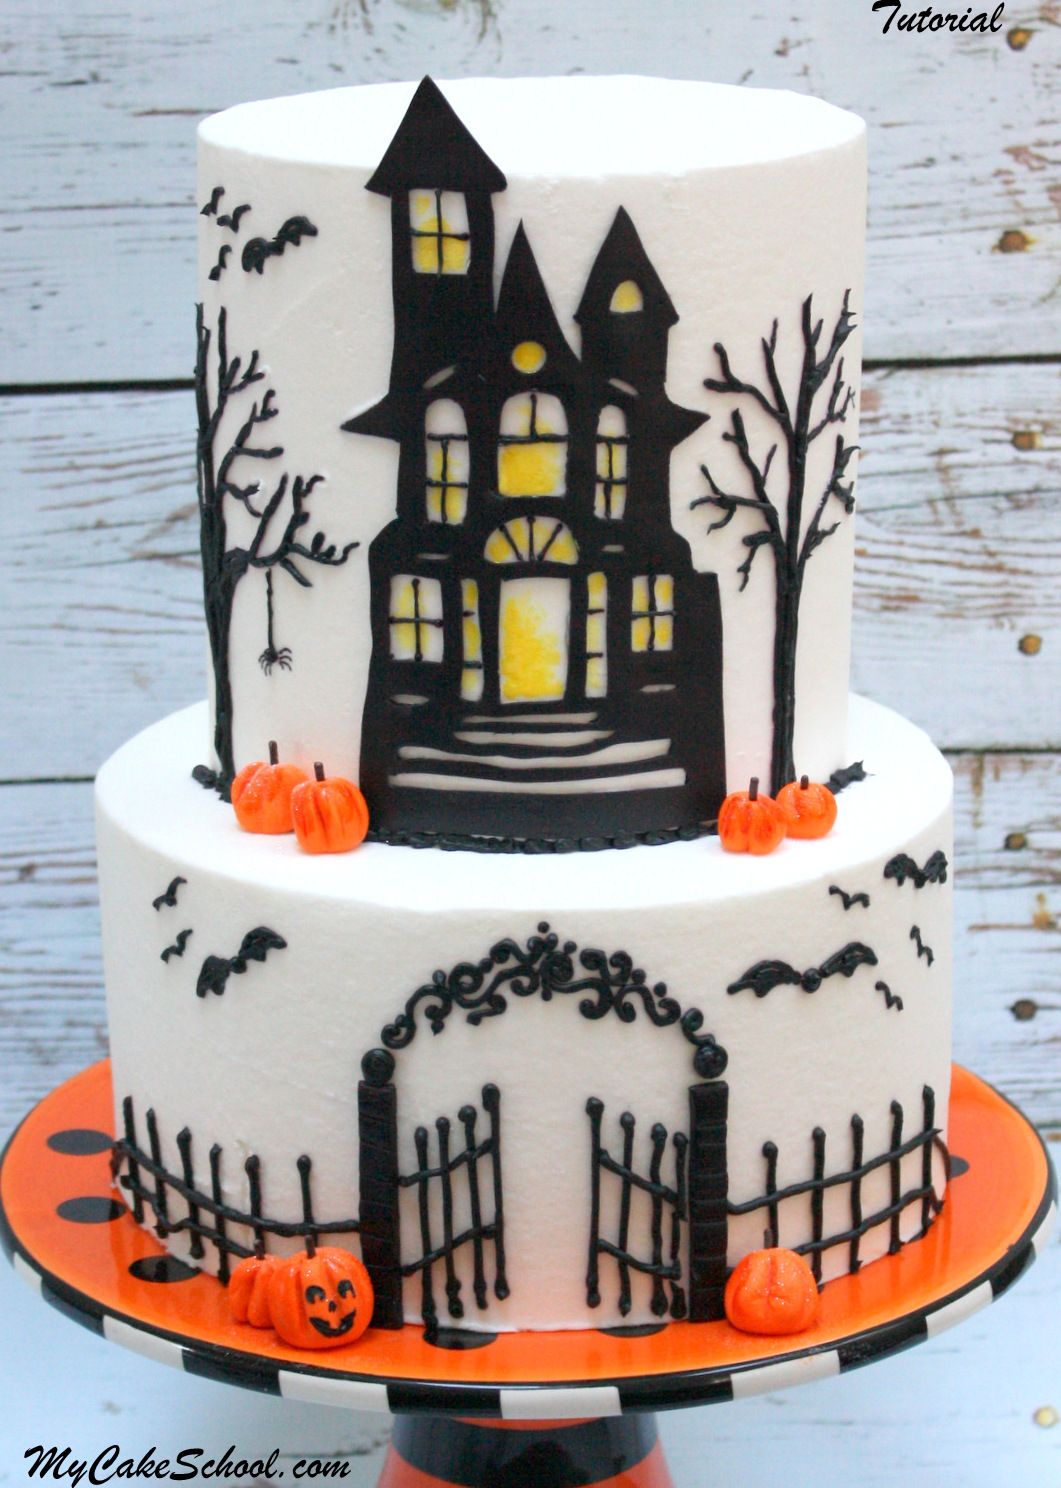 Haunted House Cake!   A Cake Decorating Video Tutorial ...